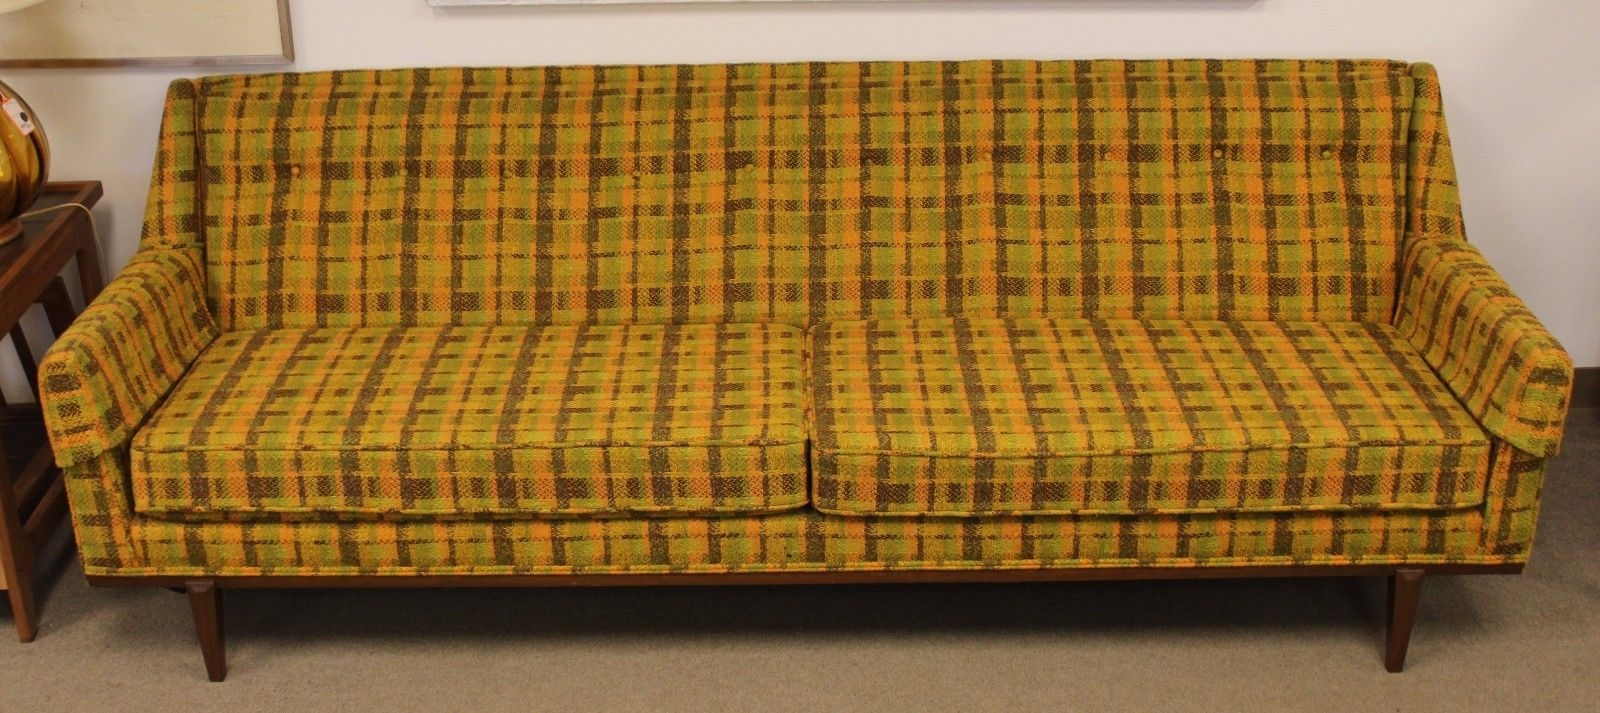 Wonderful Widely Used Cintique Mid Century Armchairs In Mid Century Modern Cintique Sofa From England Dunbar Probber Era (Image 15 of 15)